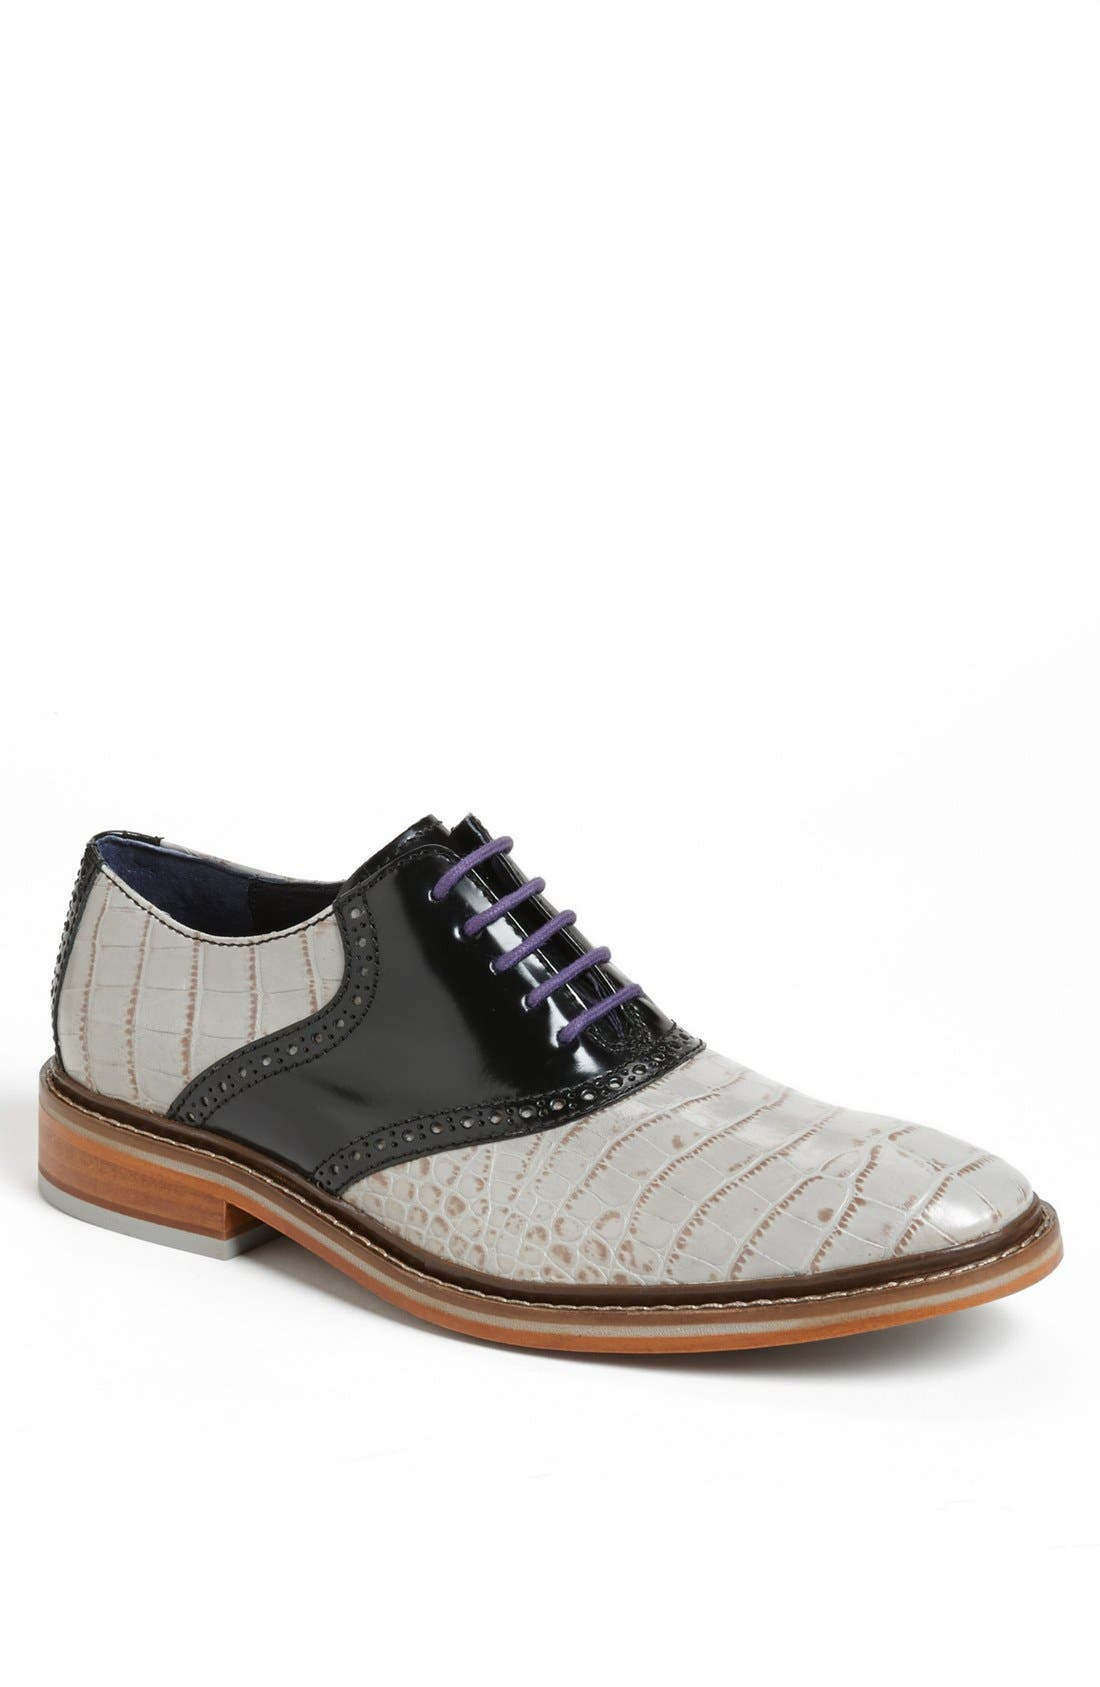 Alternate Image 1 Selected - Cole Haan 'Colton Winter' Saddle Shoe   (Men)